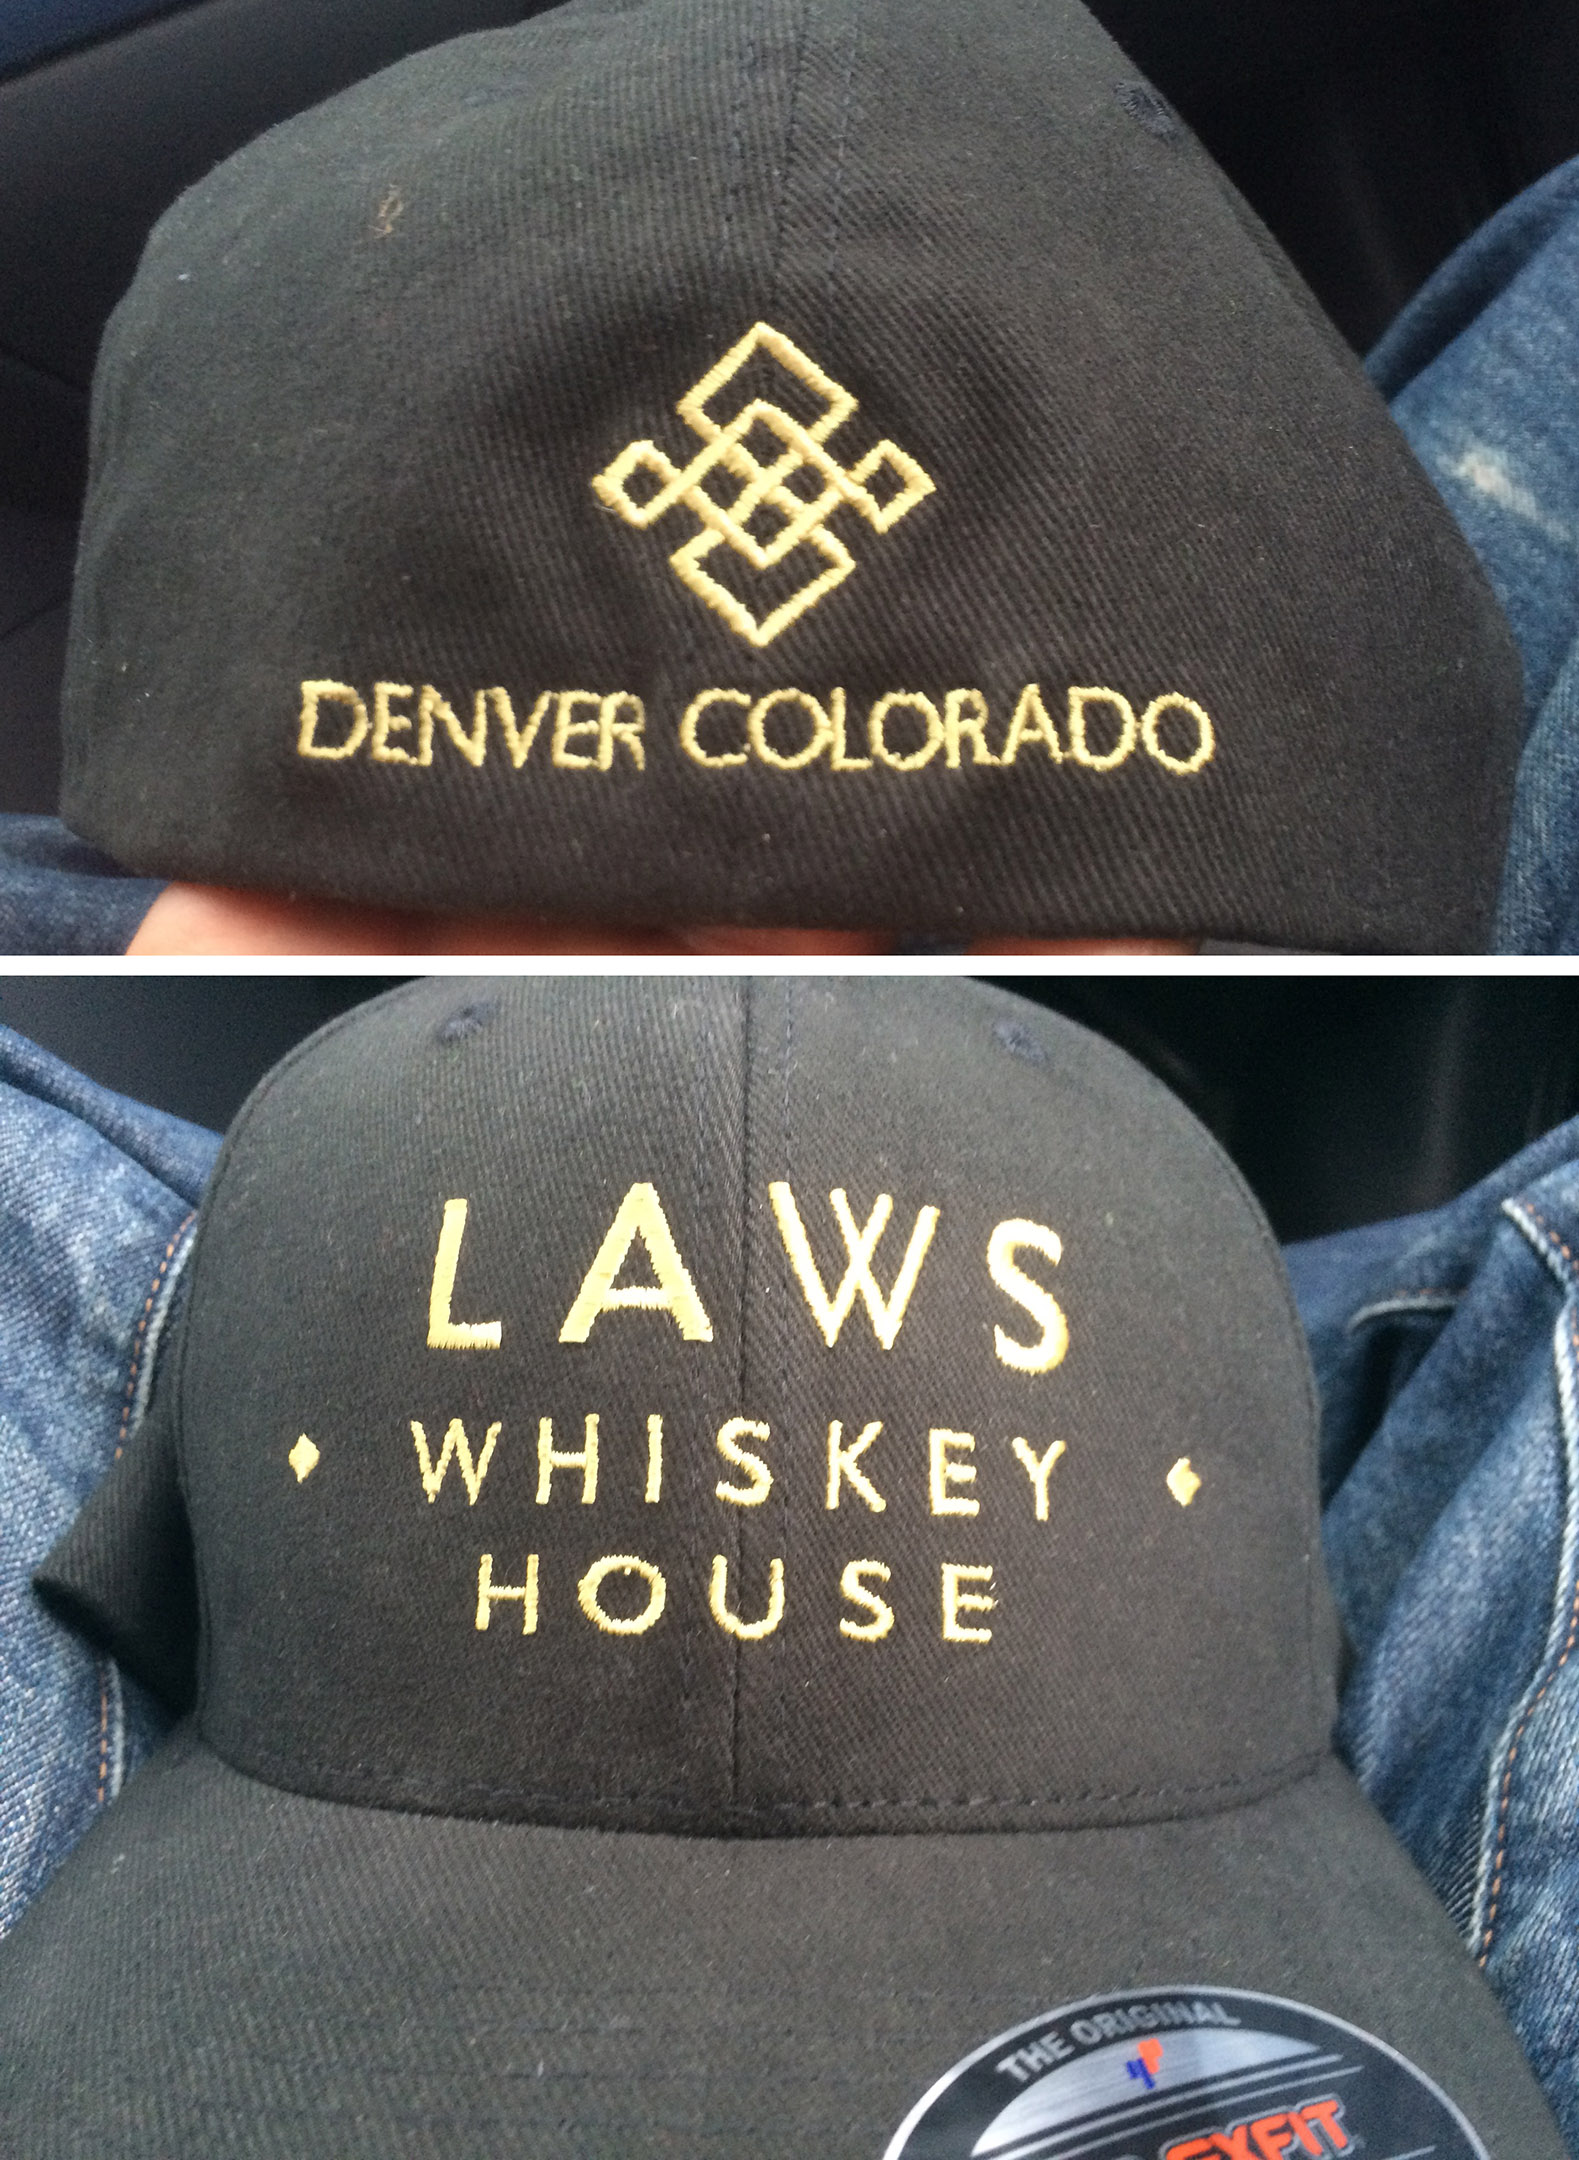 Laws Whiskey House custom embroidery